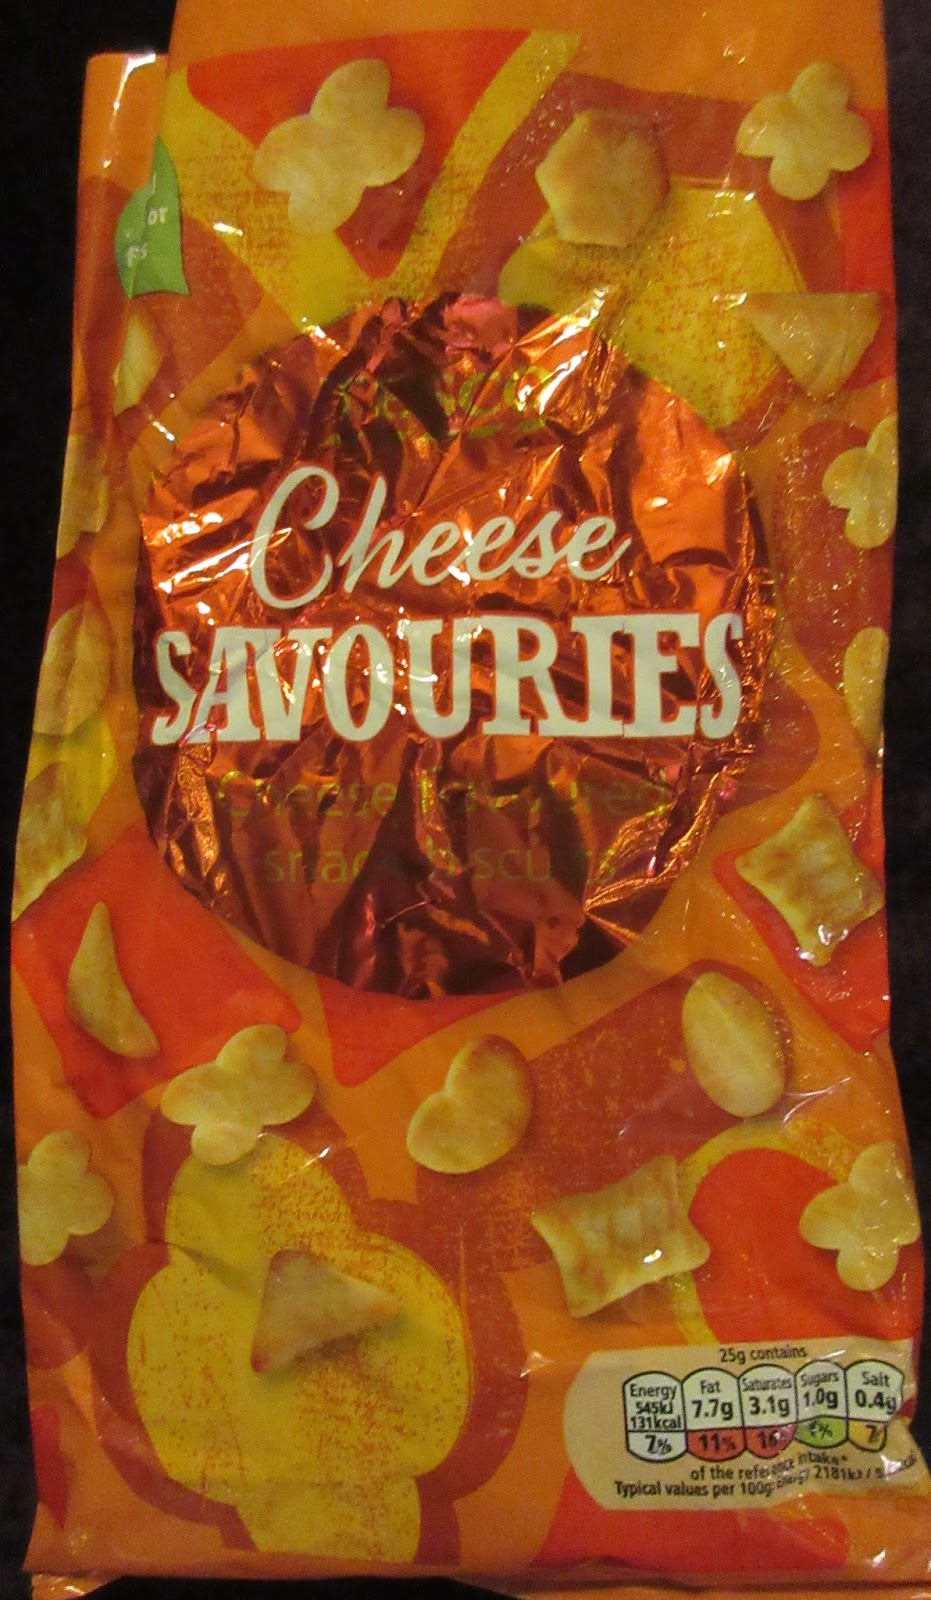 Cheeseburger Crisps & Other Stories: Tesco Cheese Savouries